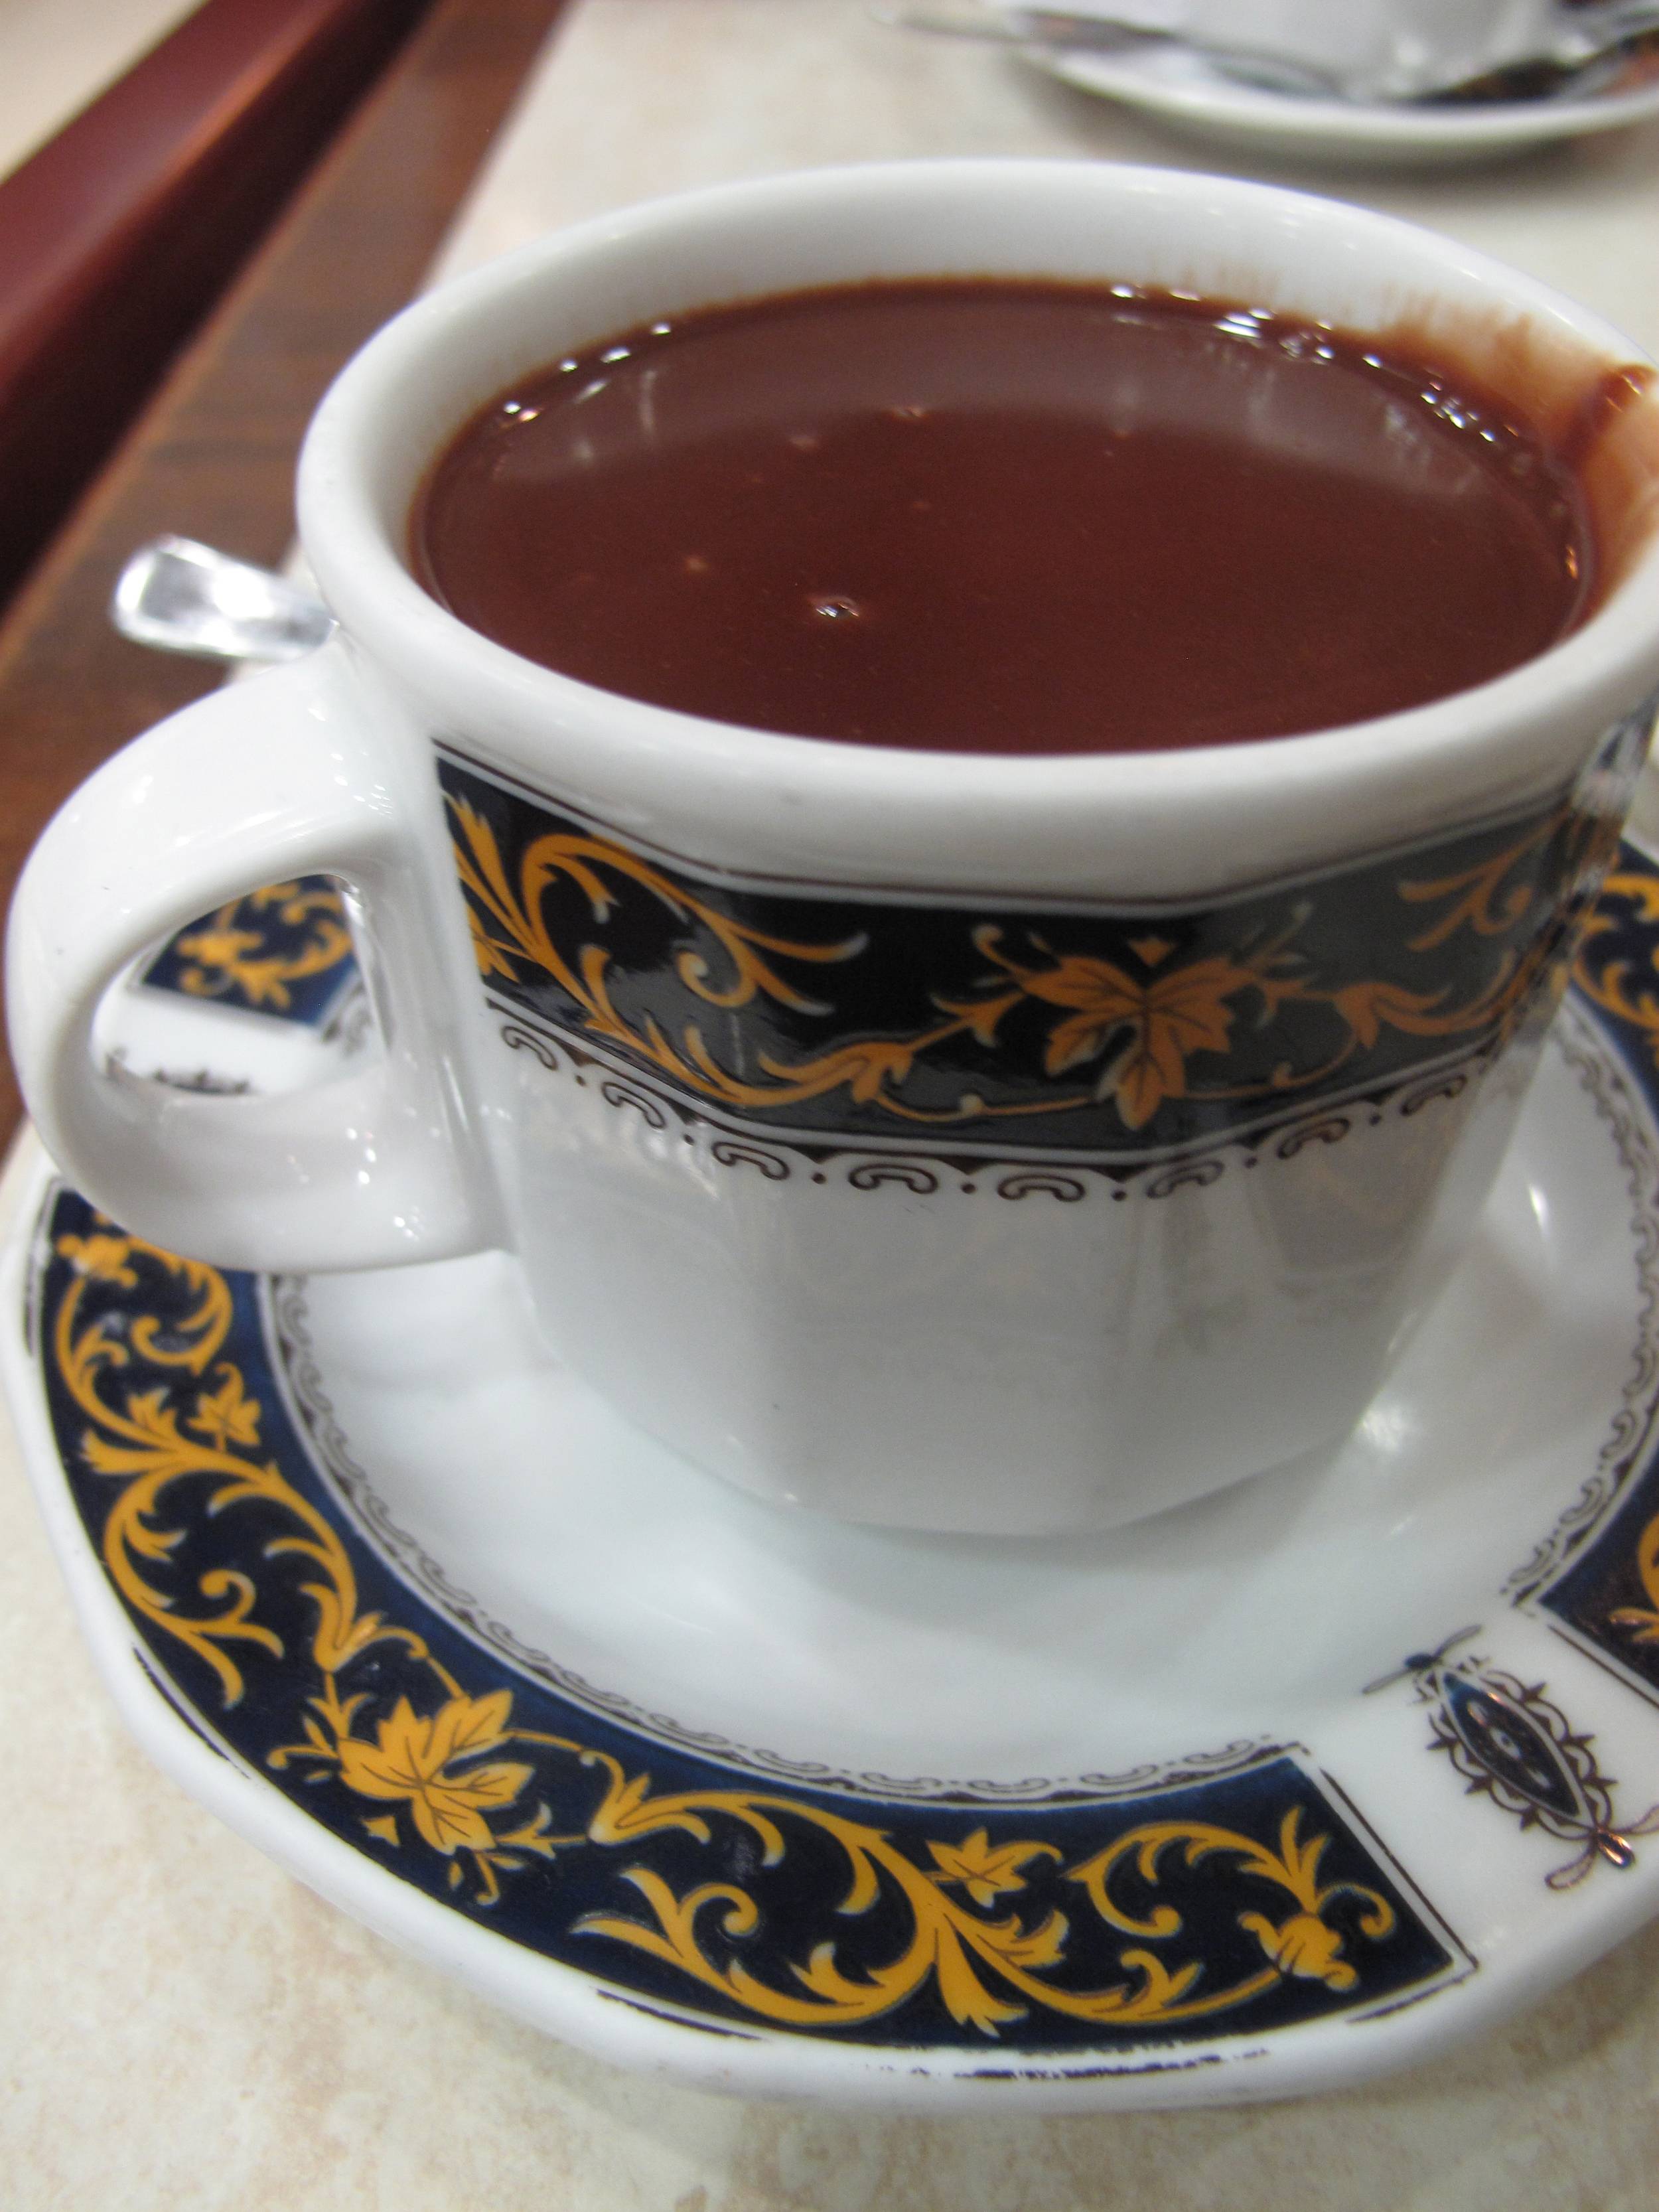 Tea cup full of chocolate for dipping churros in